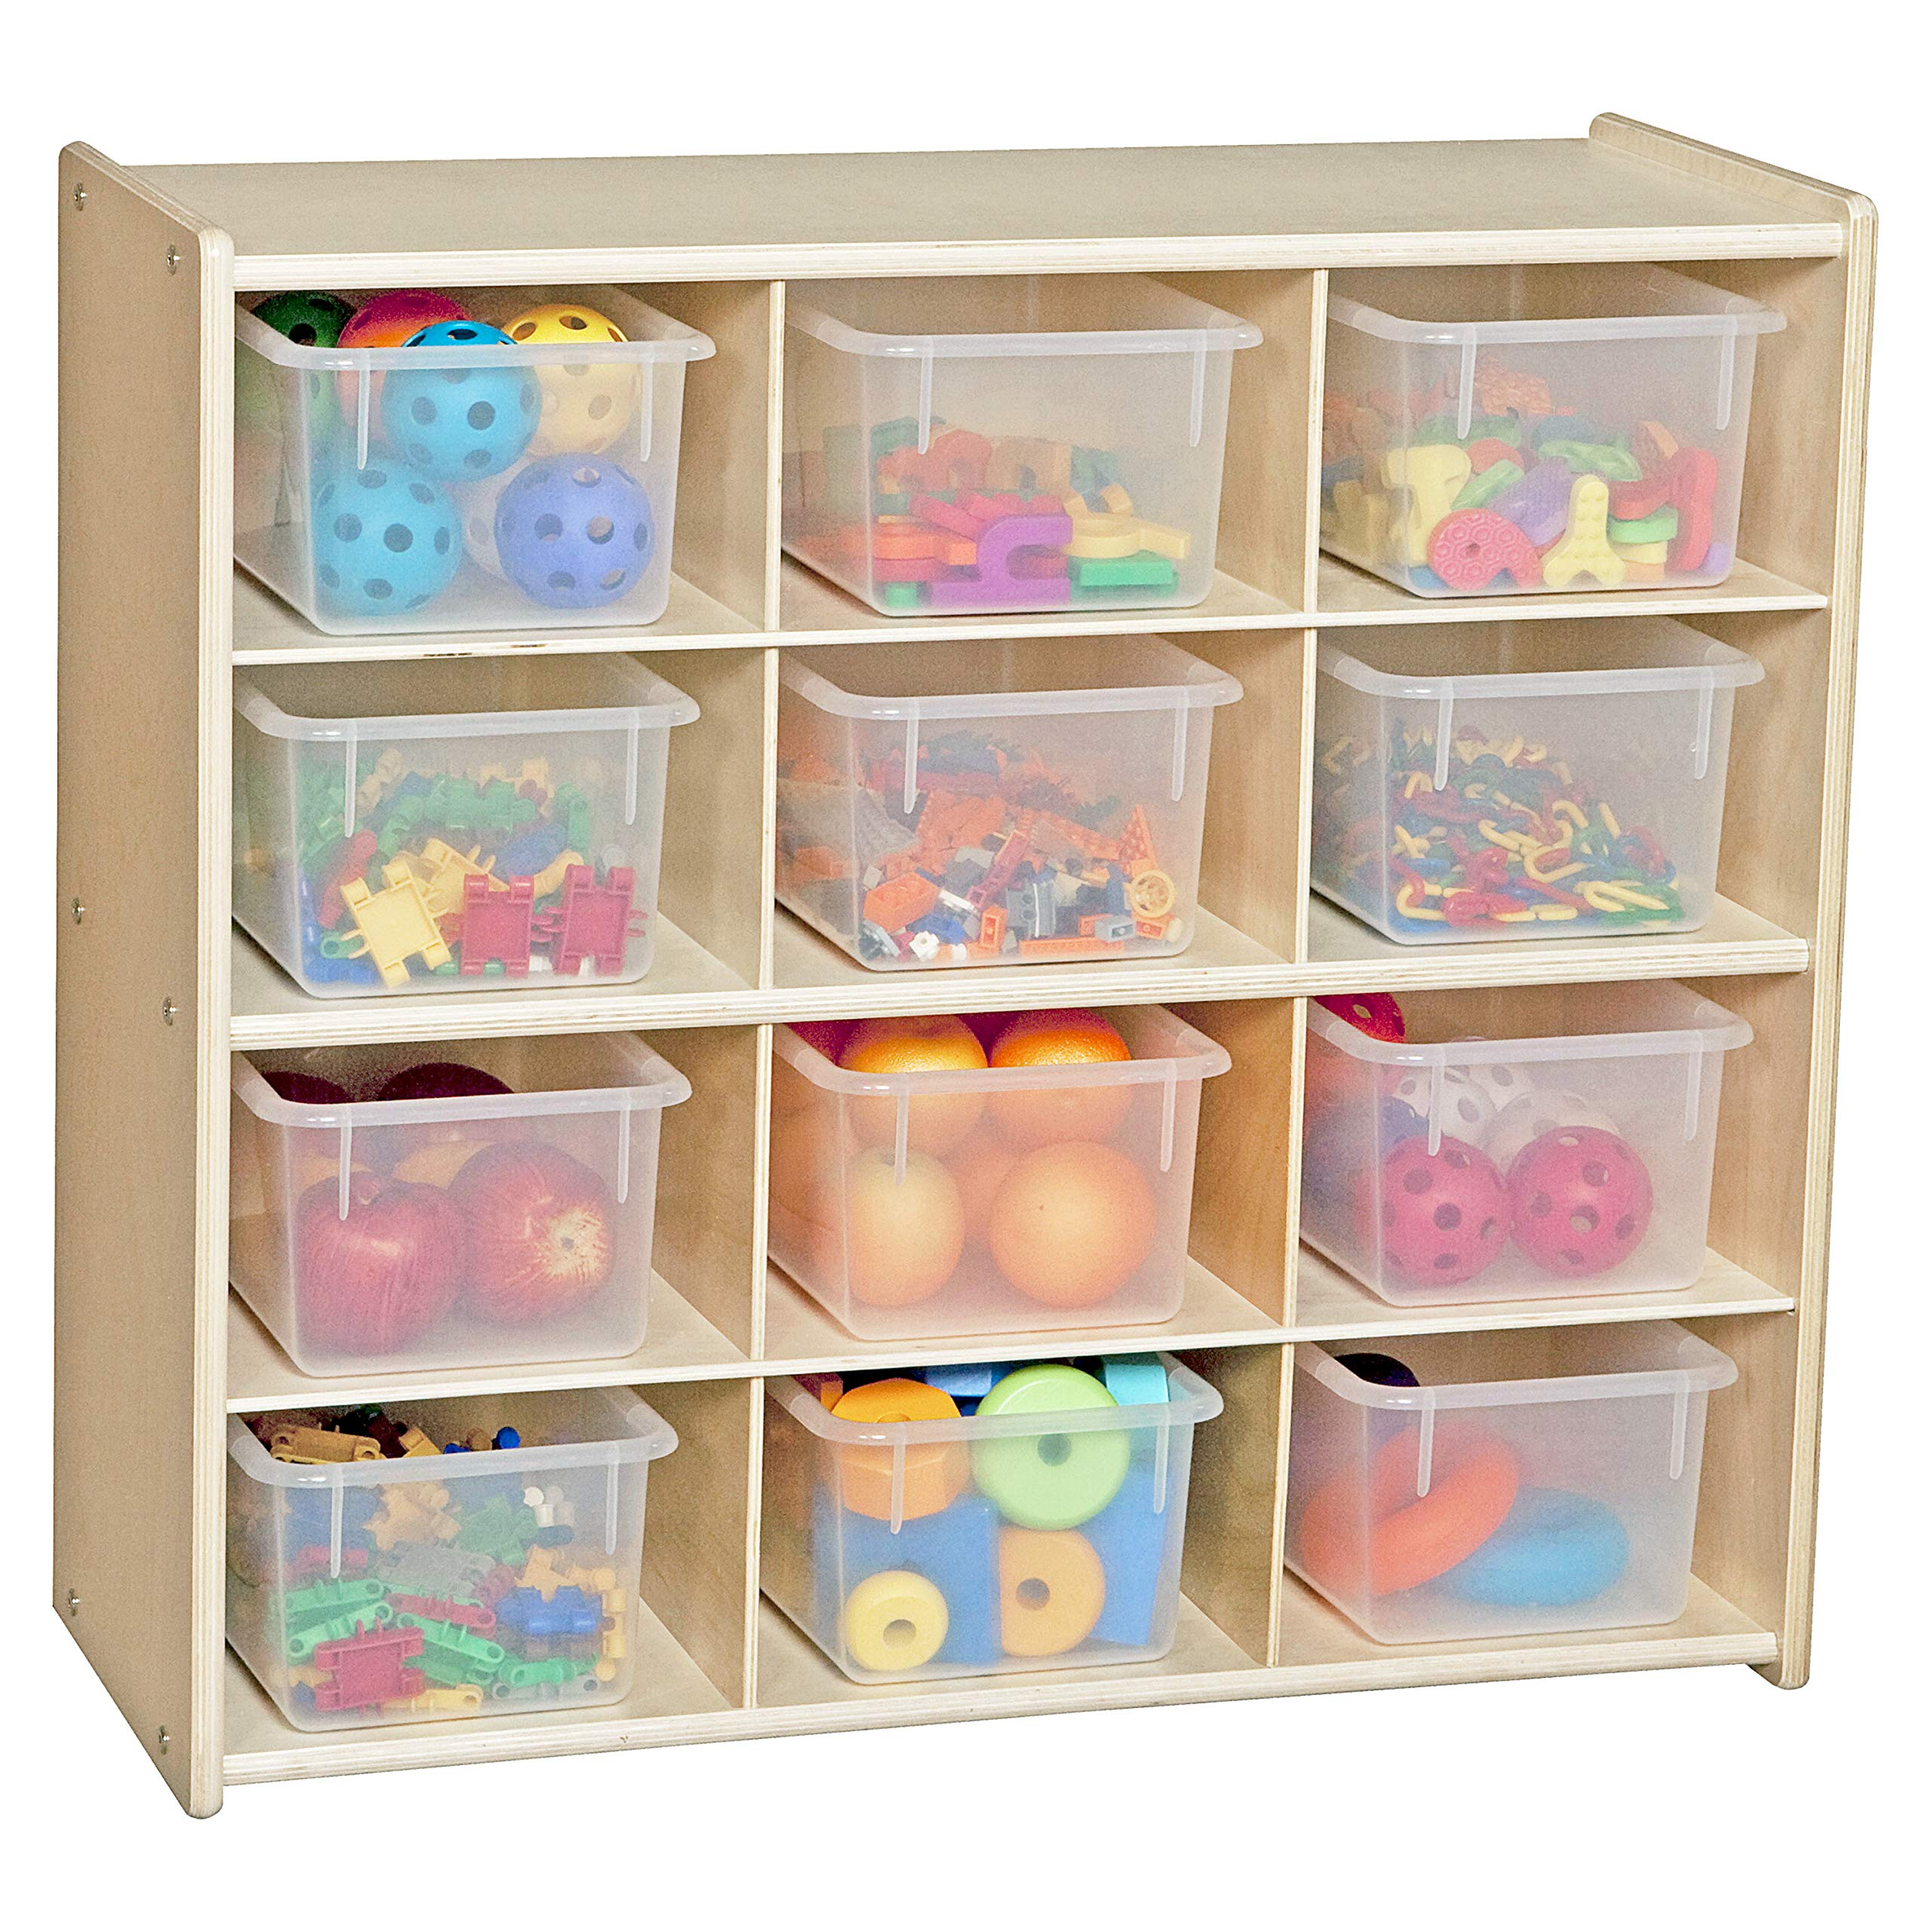 Contender 12 Cubby Storage Unit with Translucent Tubs